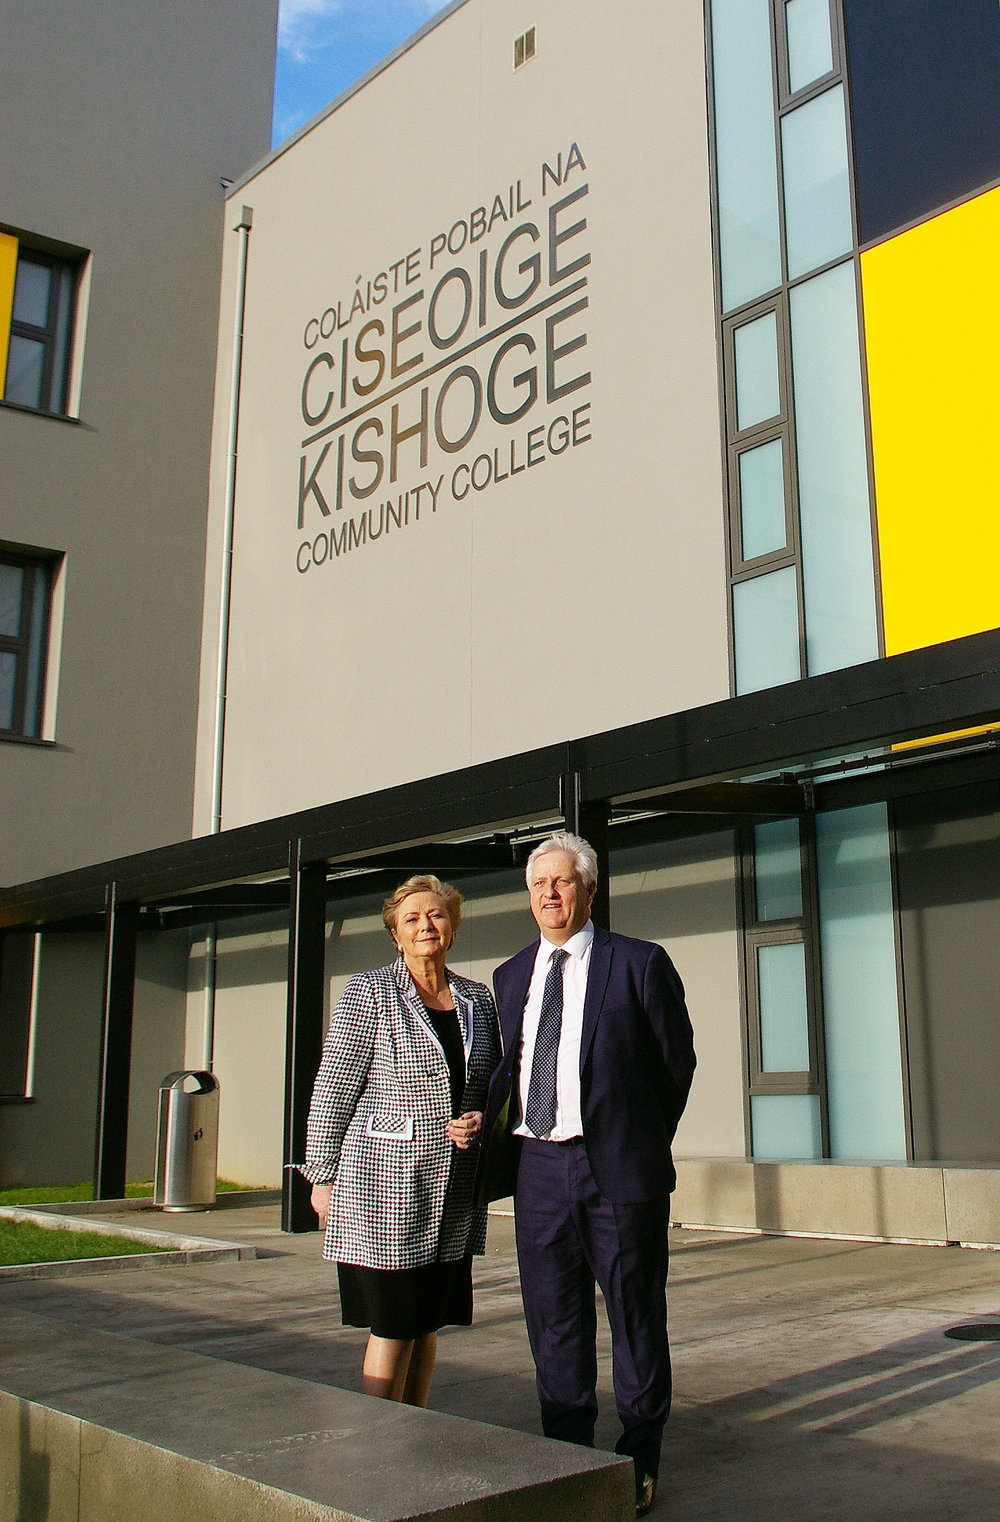 Minister for Justice & Equality visits KCC